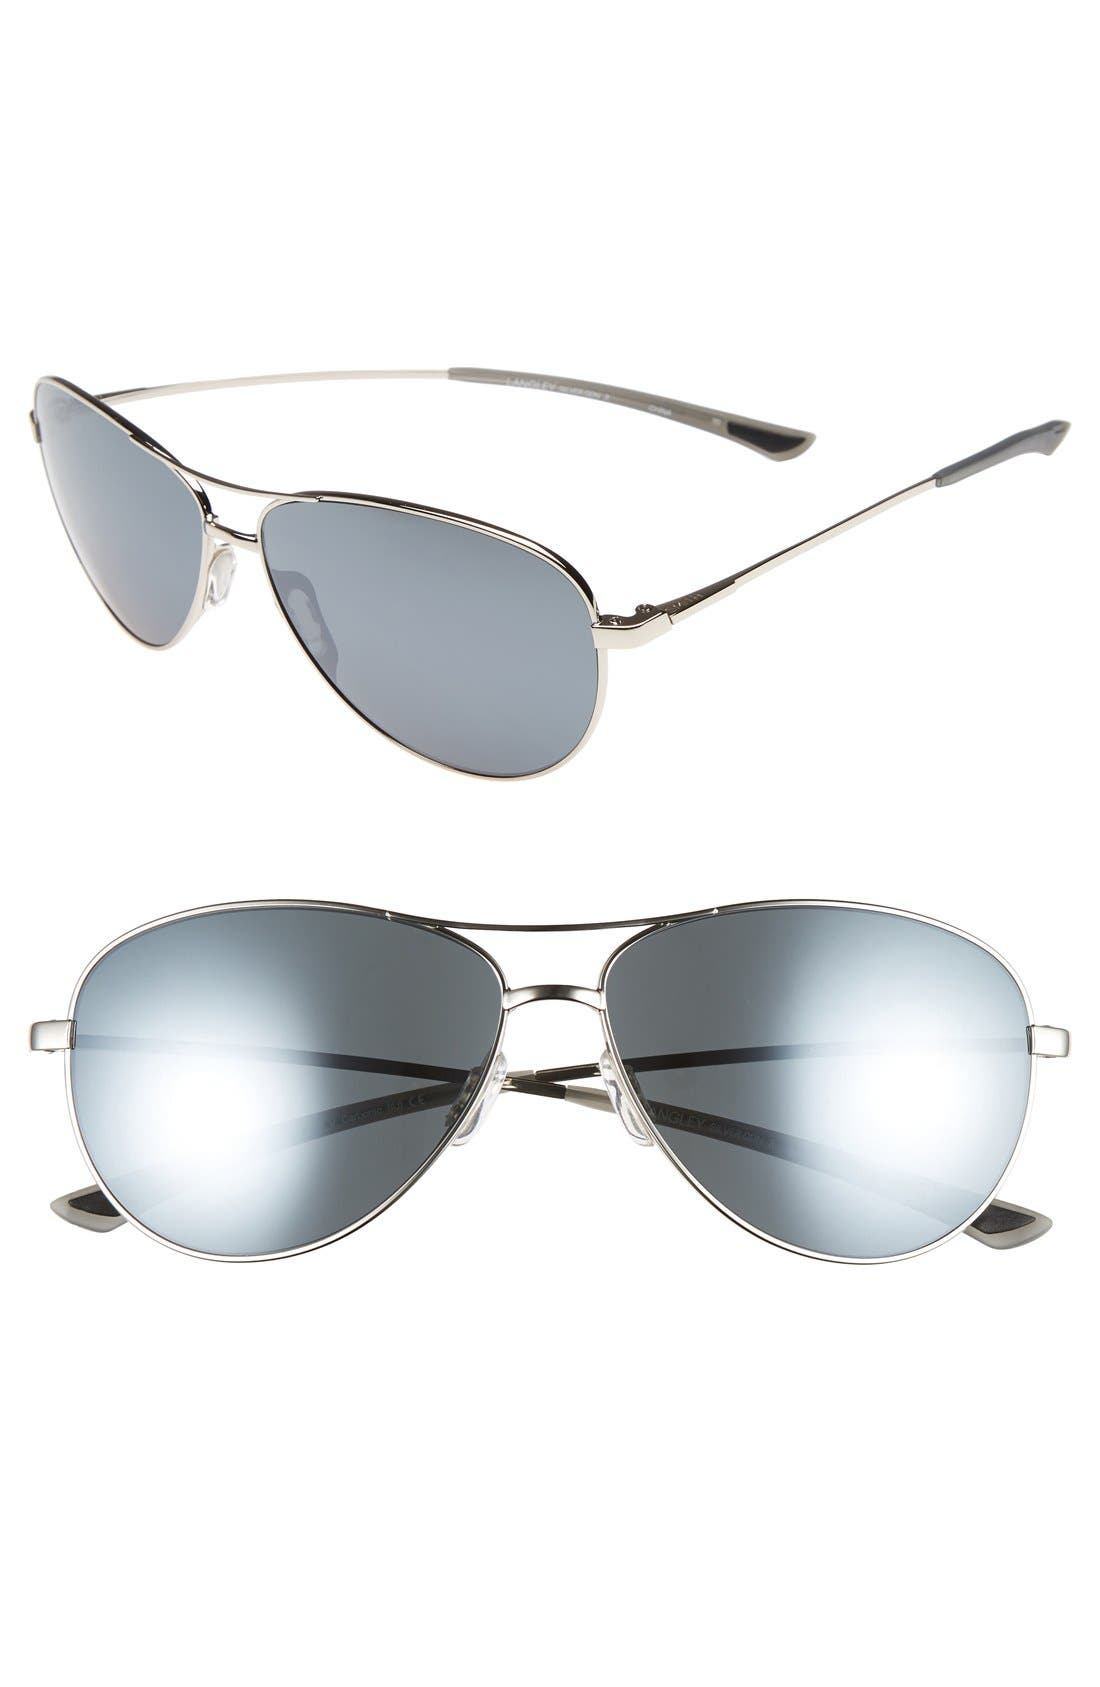 'LANGLEY' 60MM AVIATOR SUNGLASSES - SILVER